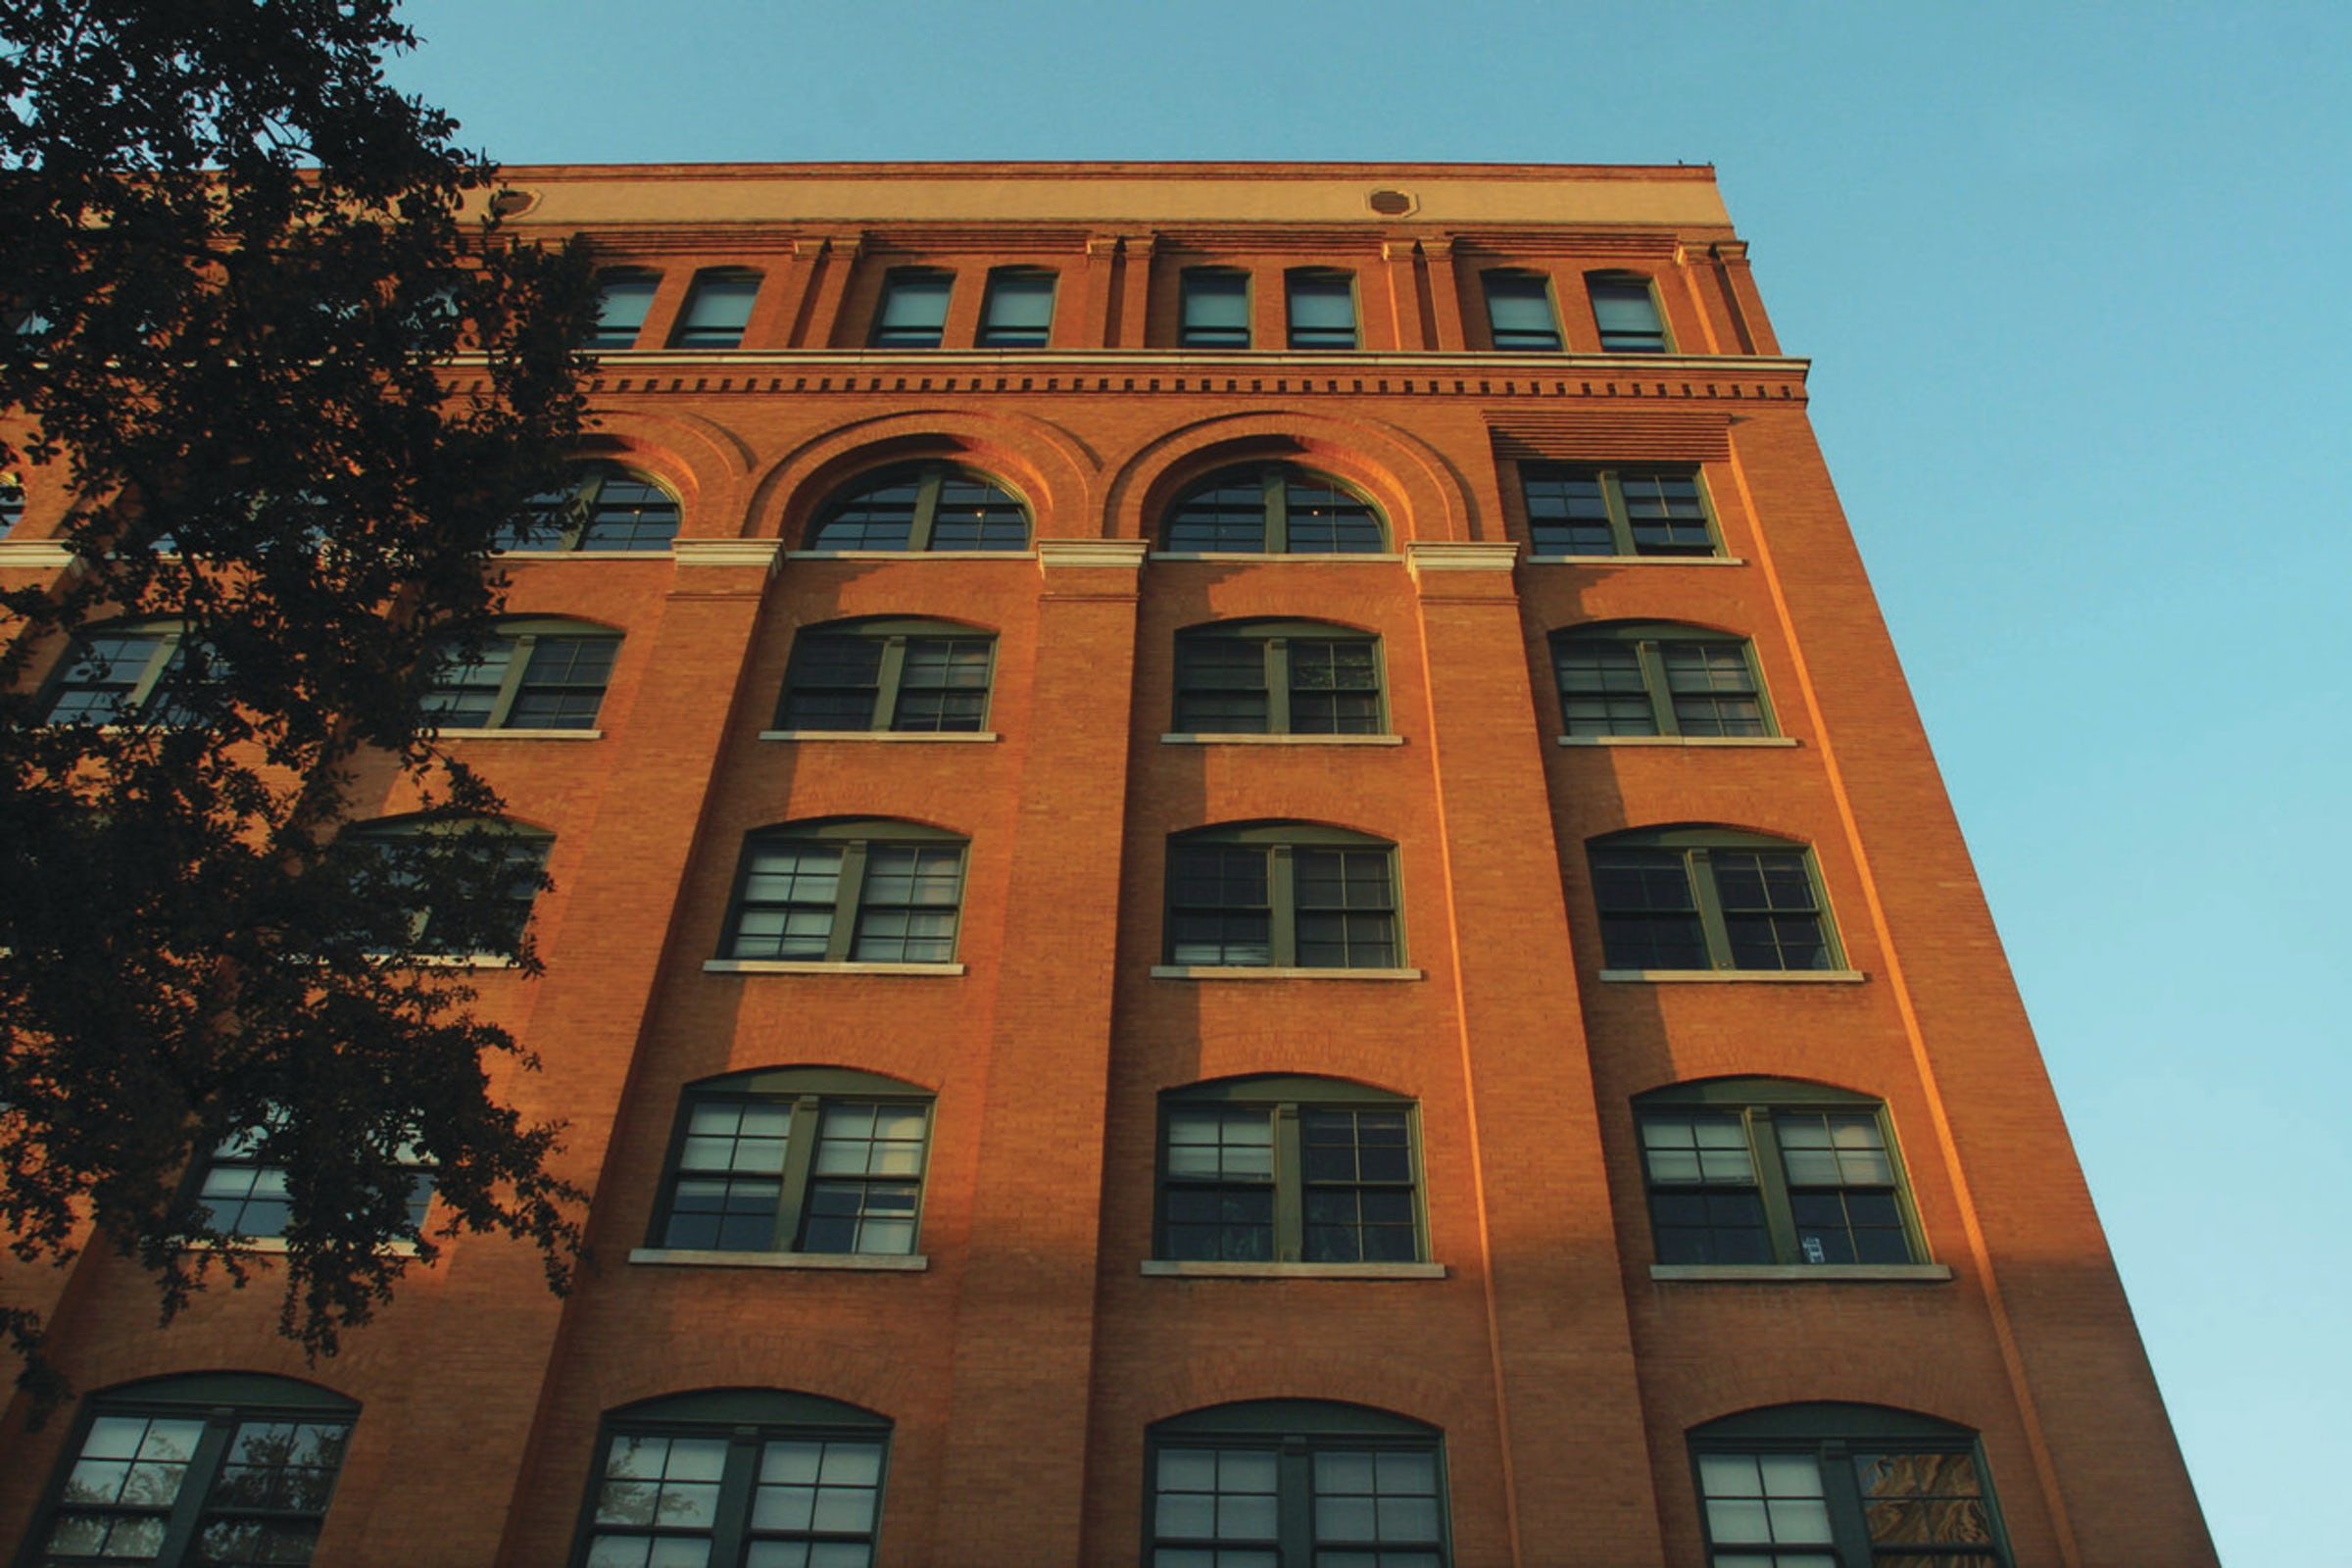 Sixth Floor Museum at Dealey Plaza in Beyond Dallas